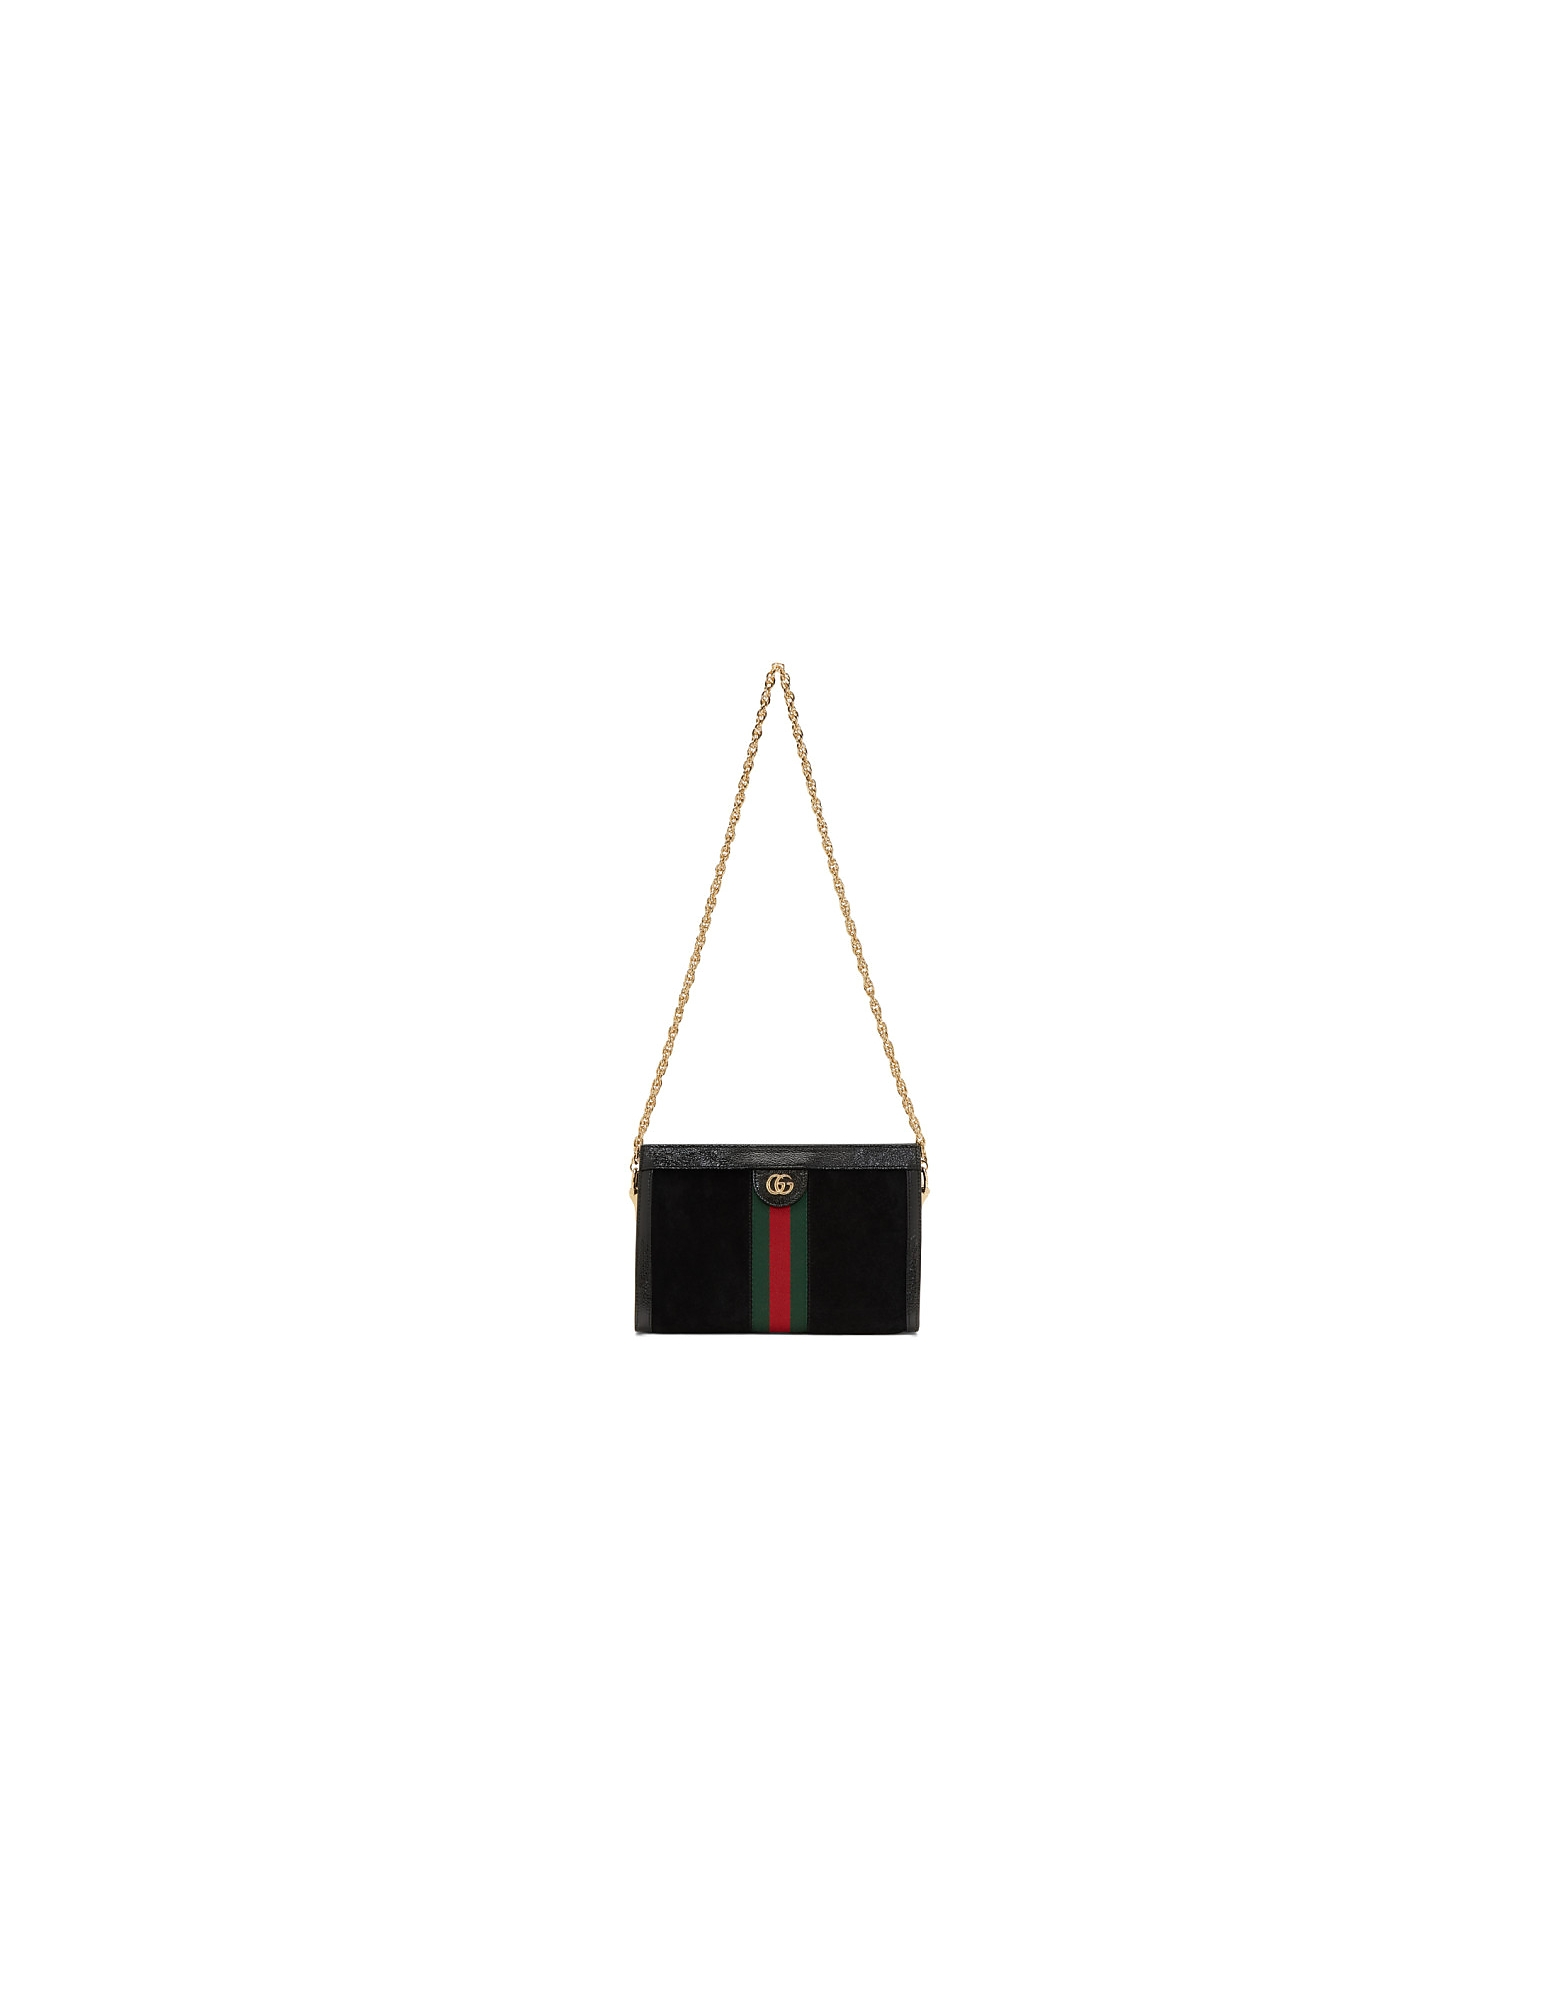 Gucci Designer Handbags, Black Suede Small Ophidia Chain Bag